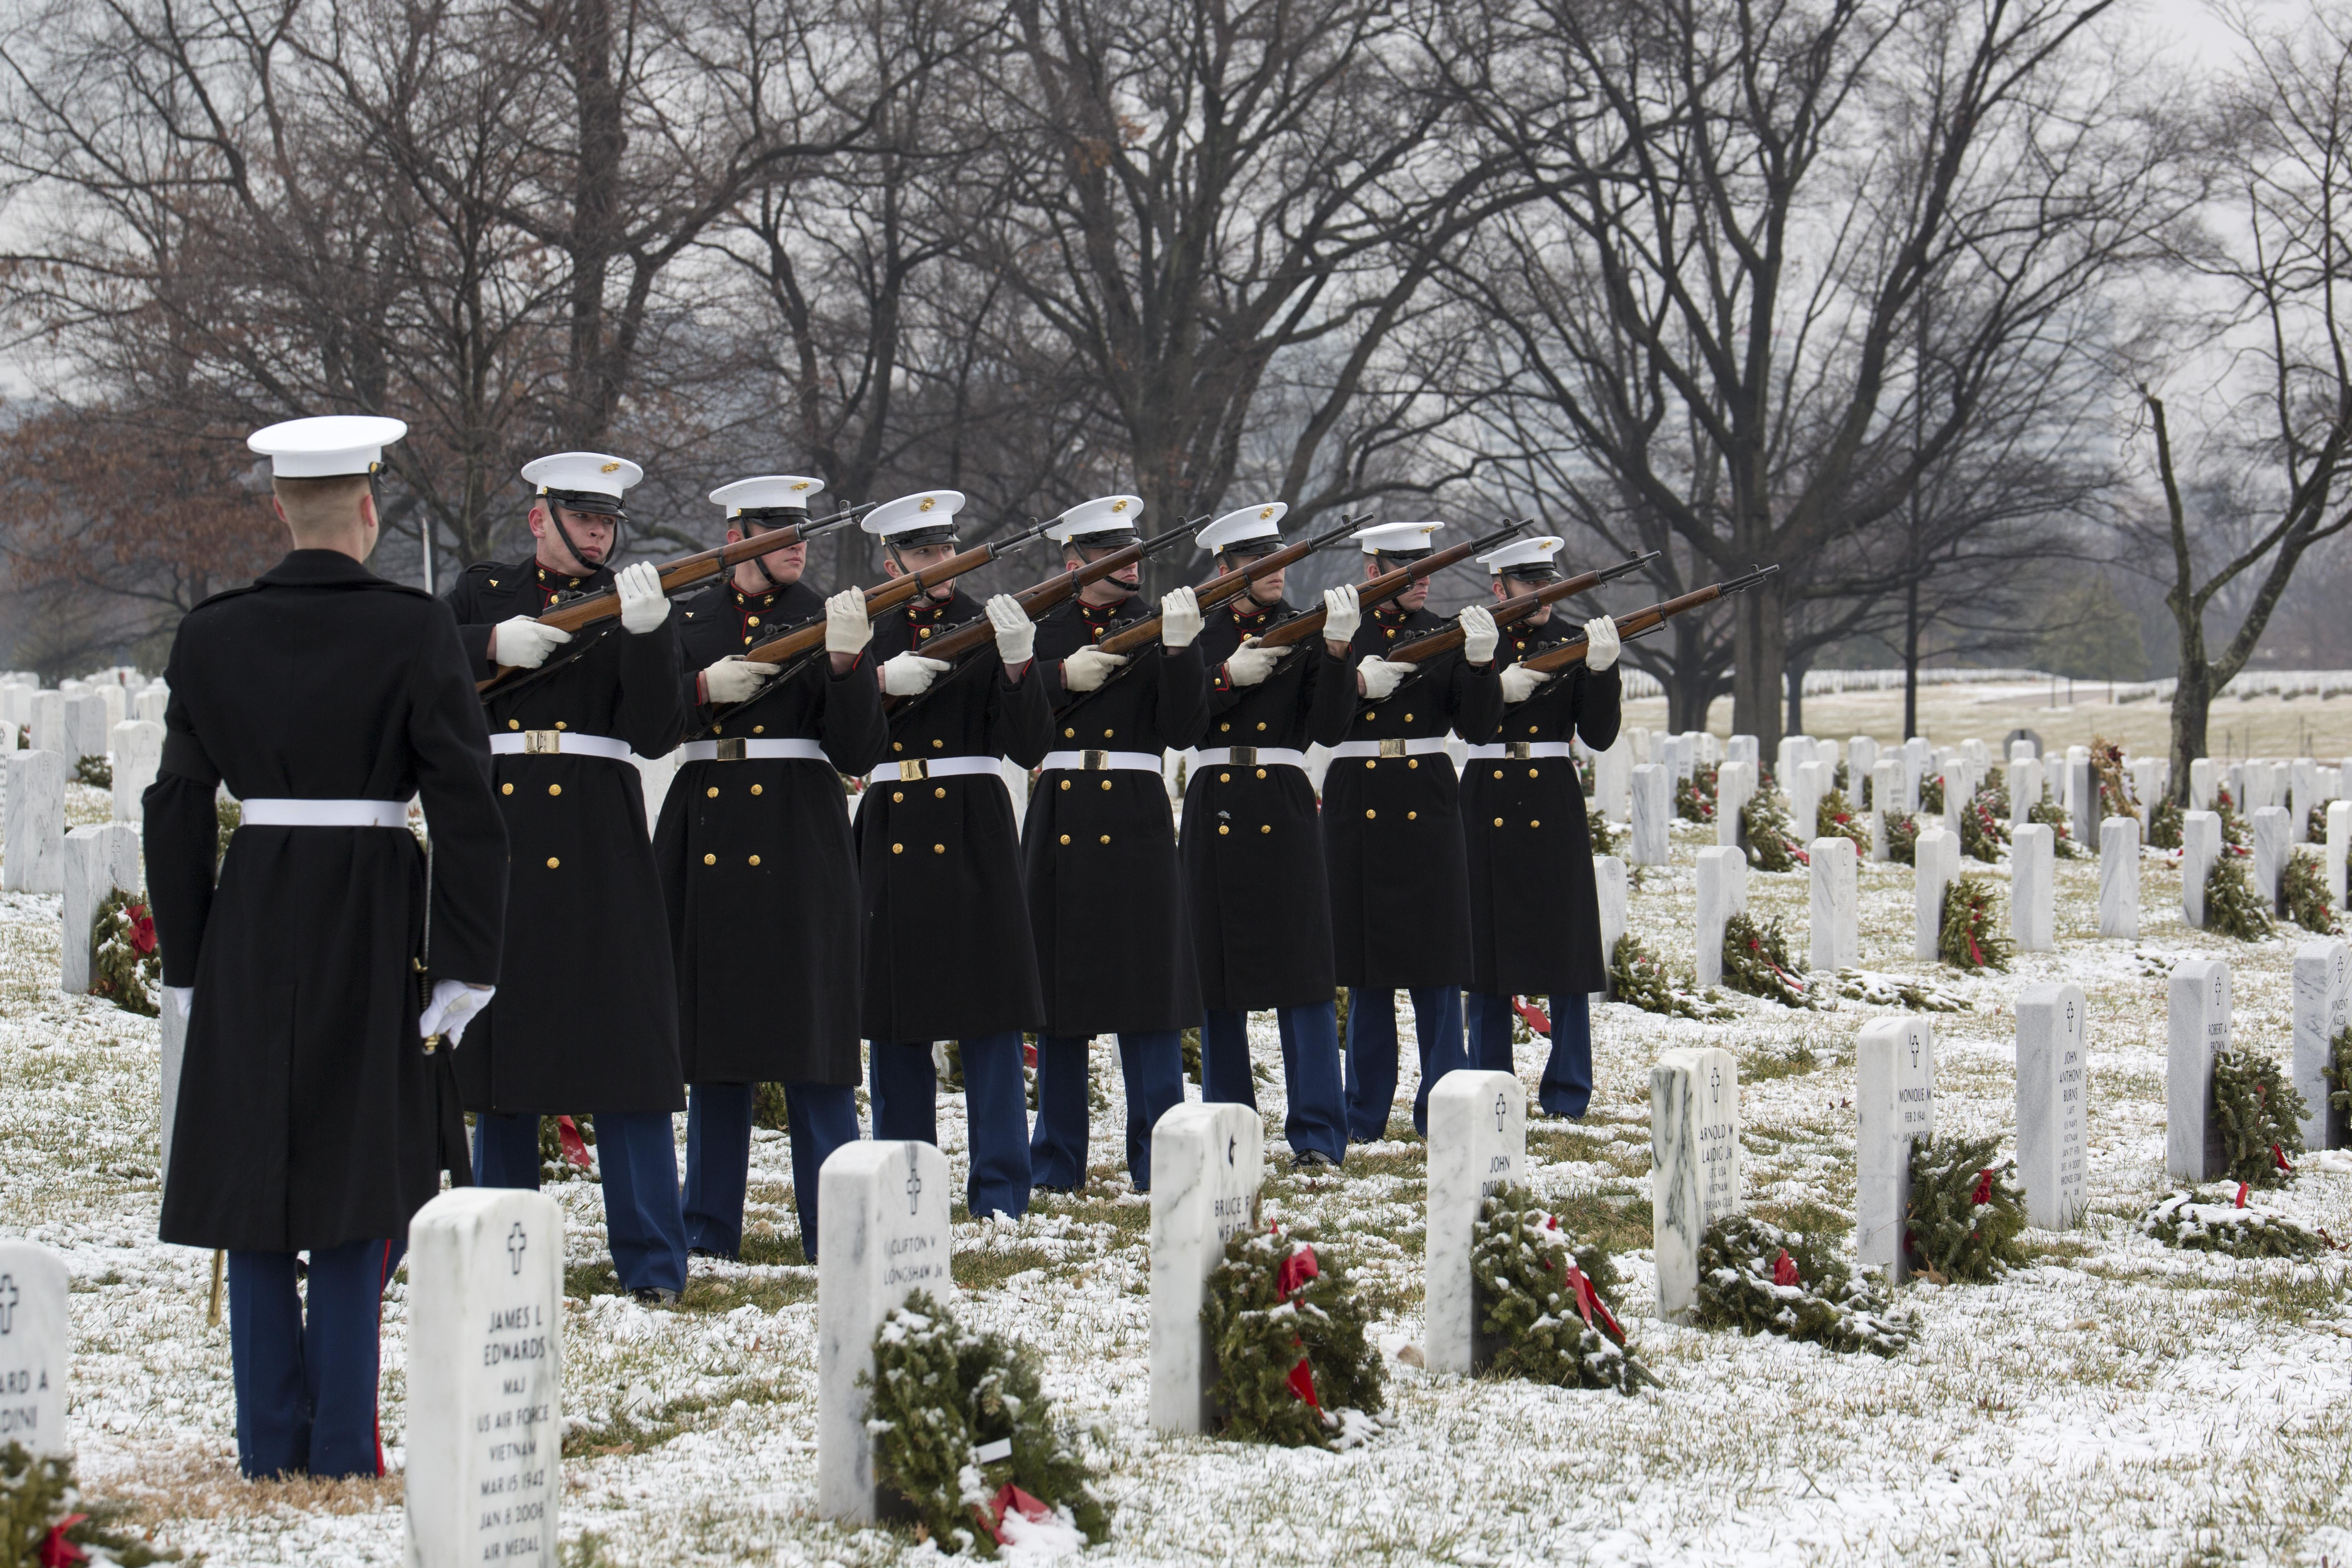 Arlington, Va. - A firing party from Marine Barracks Washington, D.C., renders a 21-gun salute during a funeral at Arlington National Cemetery, Arlington Va., Jan. 21. (U.S. Marine Corps Photo by Lance Cpl. Christian Varney/Released)